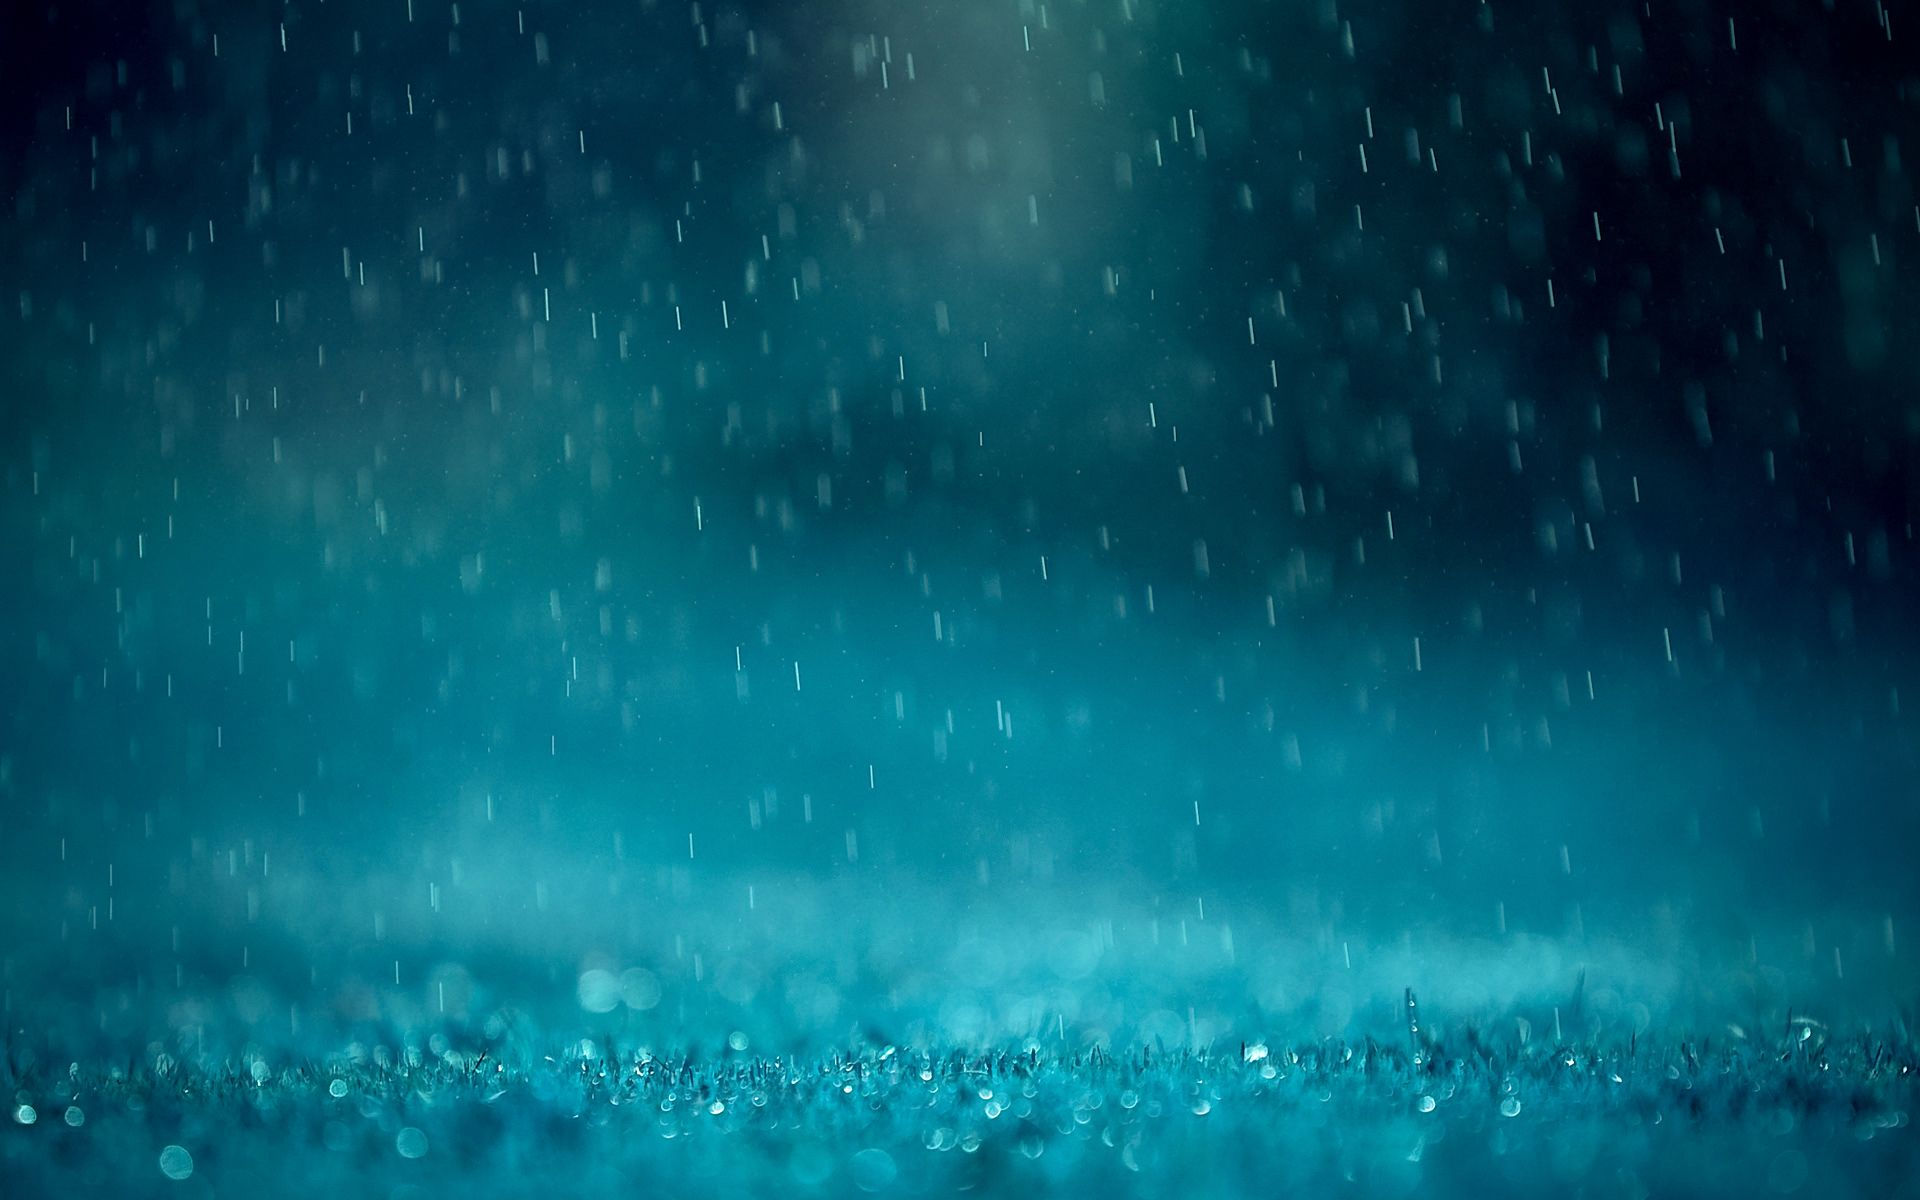 rain wallpaper HD Wallpapers Download Free rain wallpaper